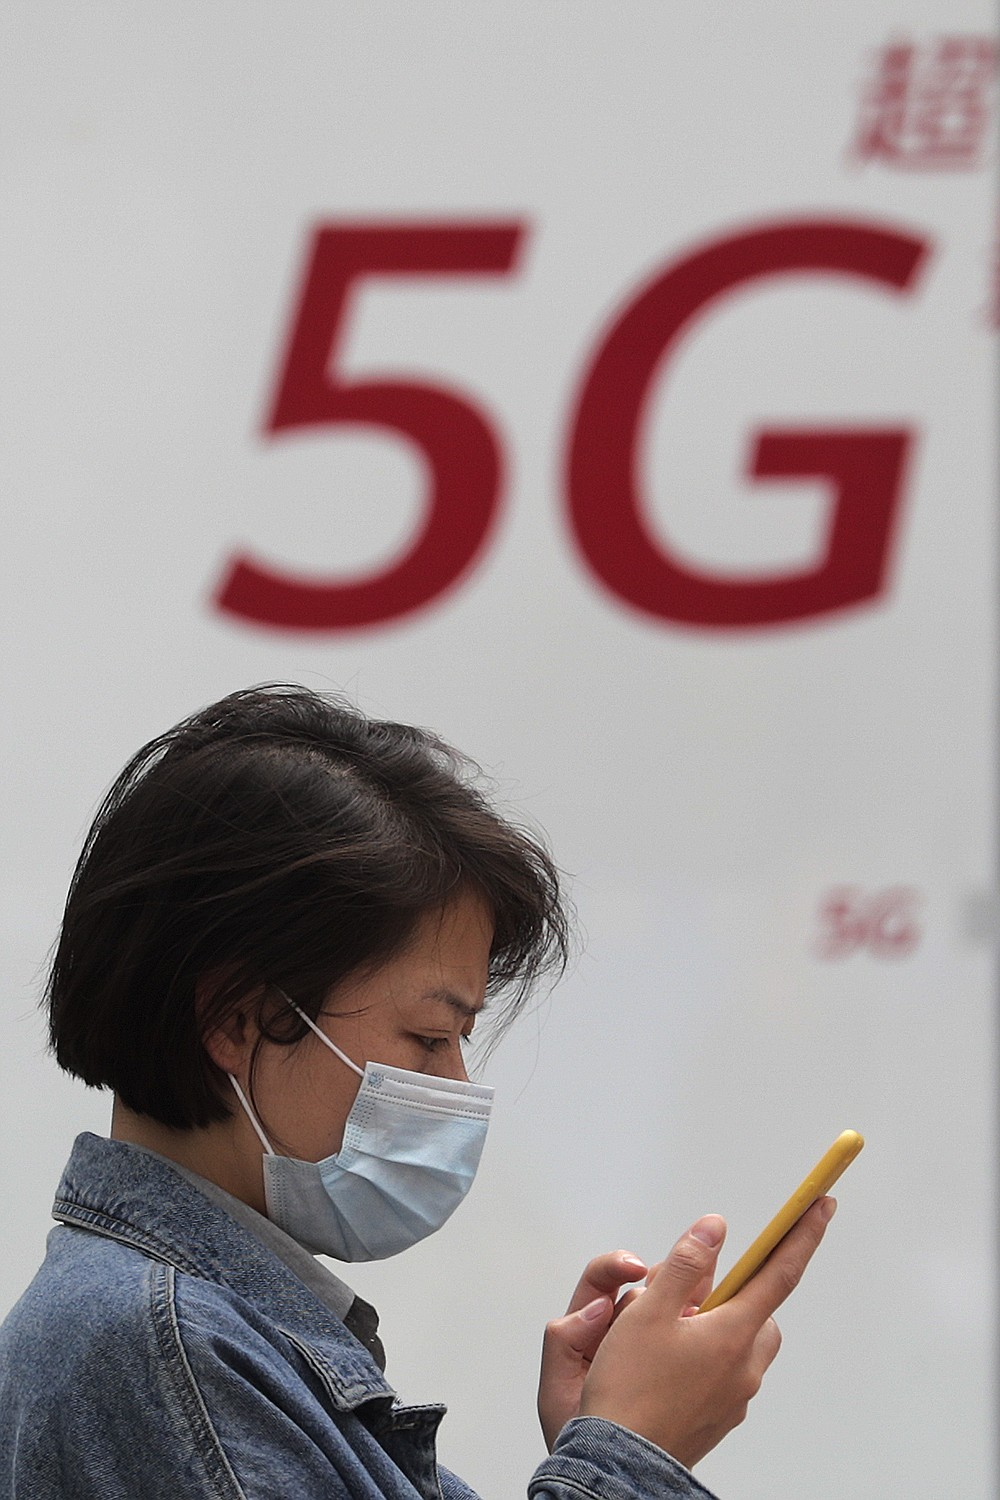 A woman wearing a face mask to help curb the spread of the coronavirus browses her smartphone in front of a 5G network advertisement at the Huawei retail shop in Beijing on Oct. 11, 2020. Chinese leaders are meeting to formulate an economic blueprint for the next five years that is expected to emphasize development of semiconductors and other technology amid a feud with Washington that is cutting off access to U.S. components for China's fledgling tech industries. (AP Photo/Andy Wong)